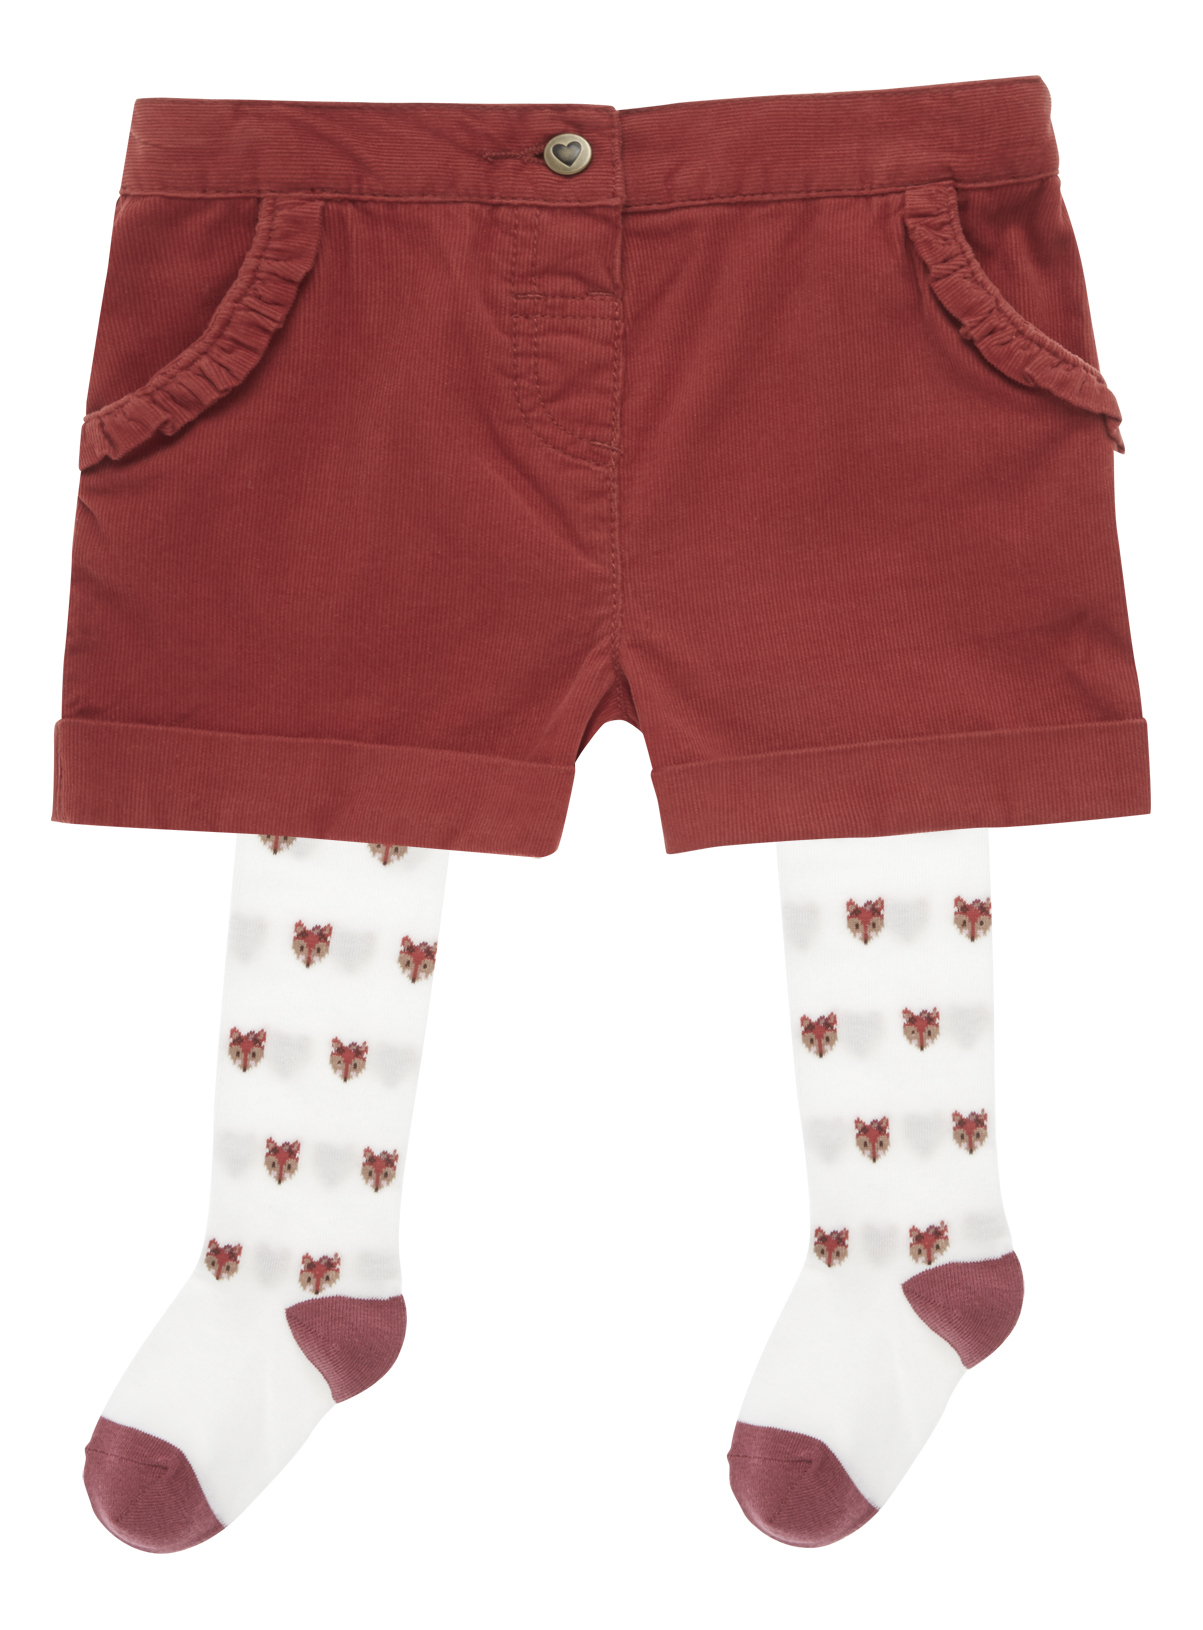 All Girl's Clothing Girls Orange Shorts And Tights (9 months - 5 ...